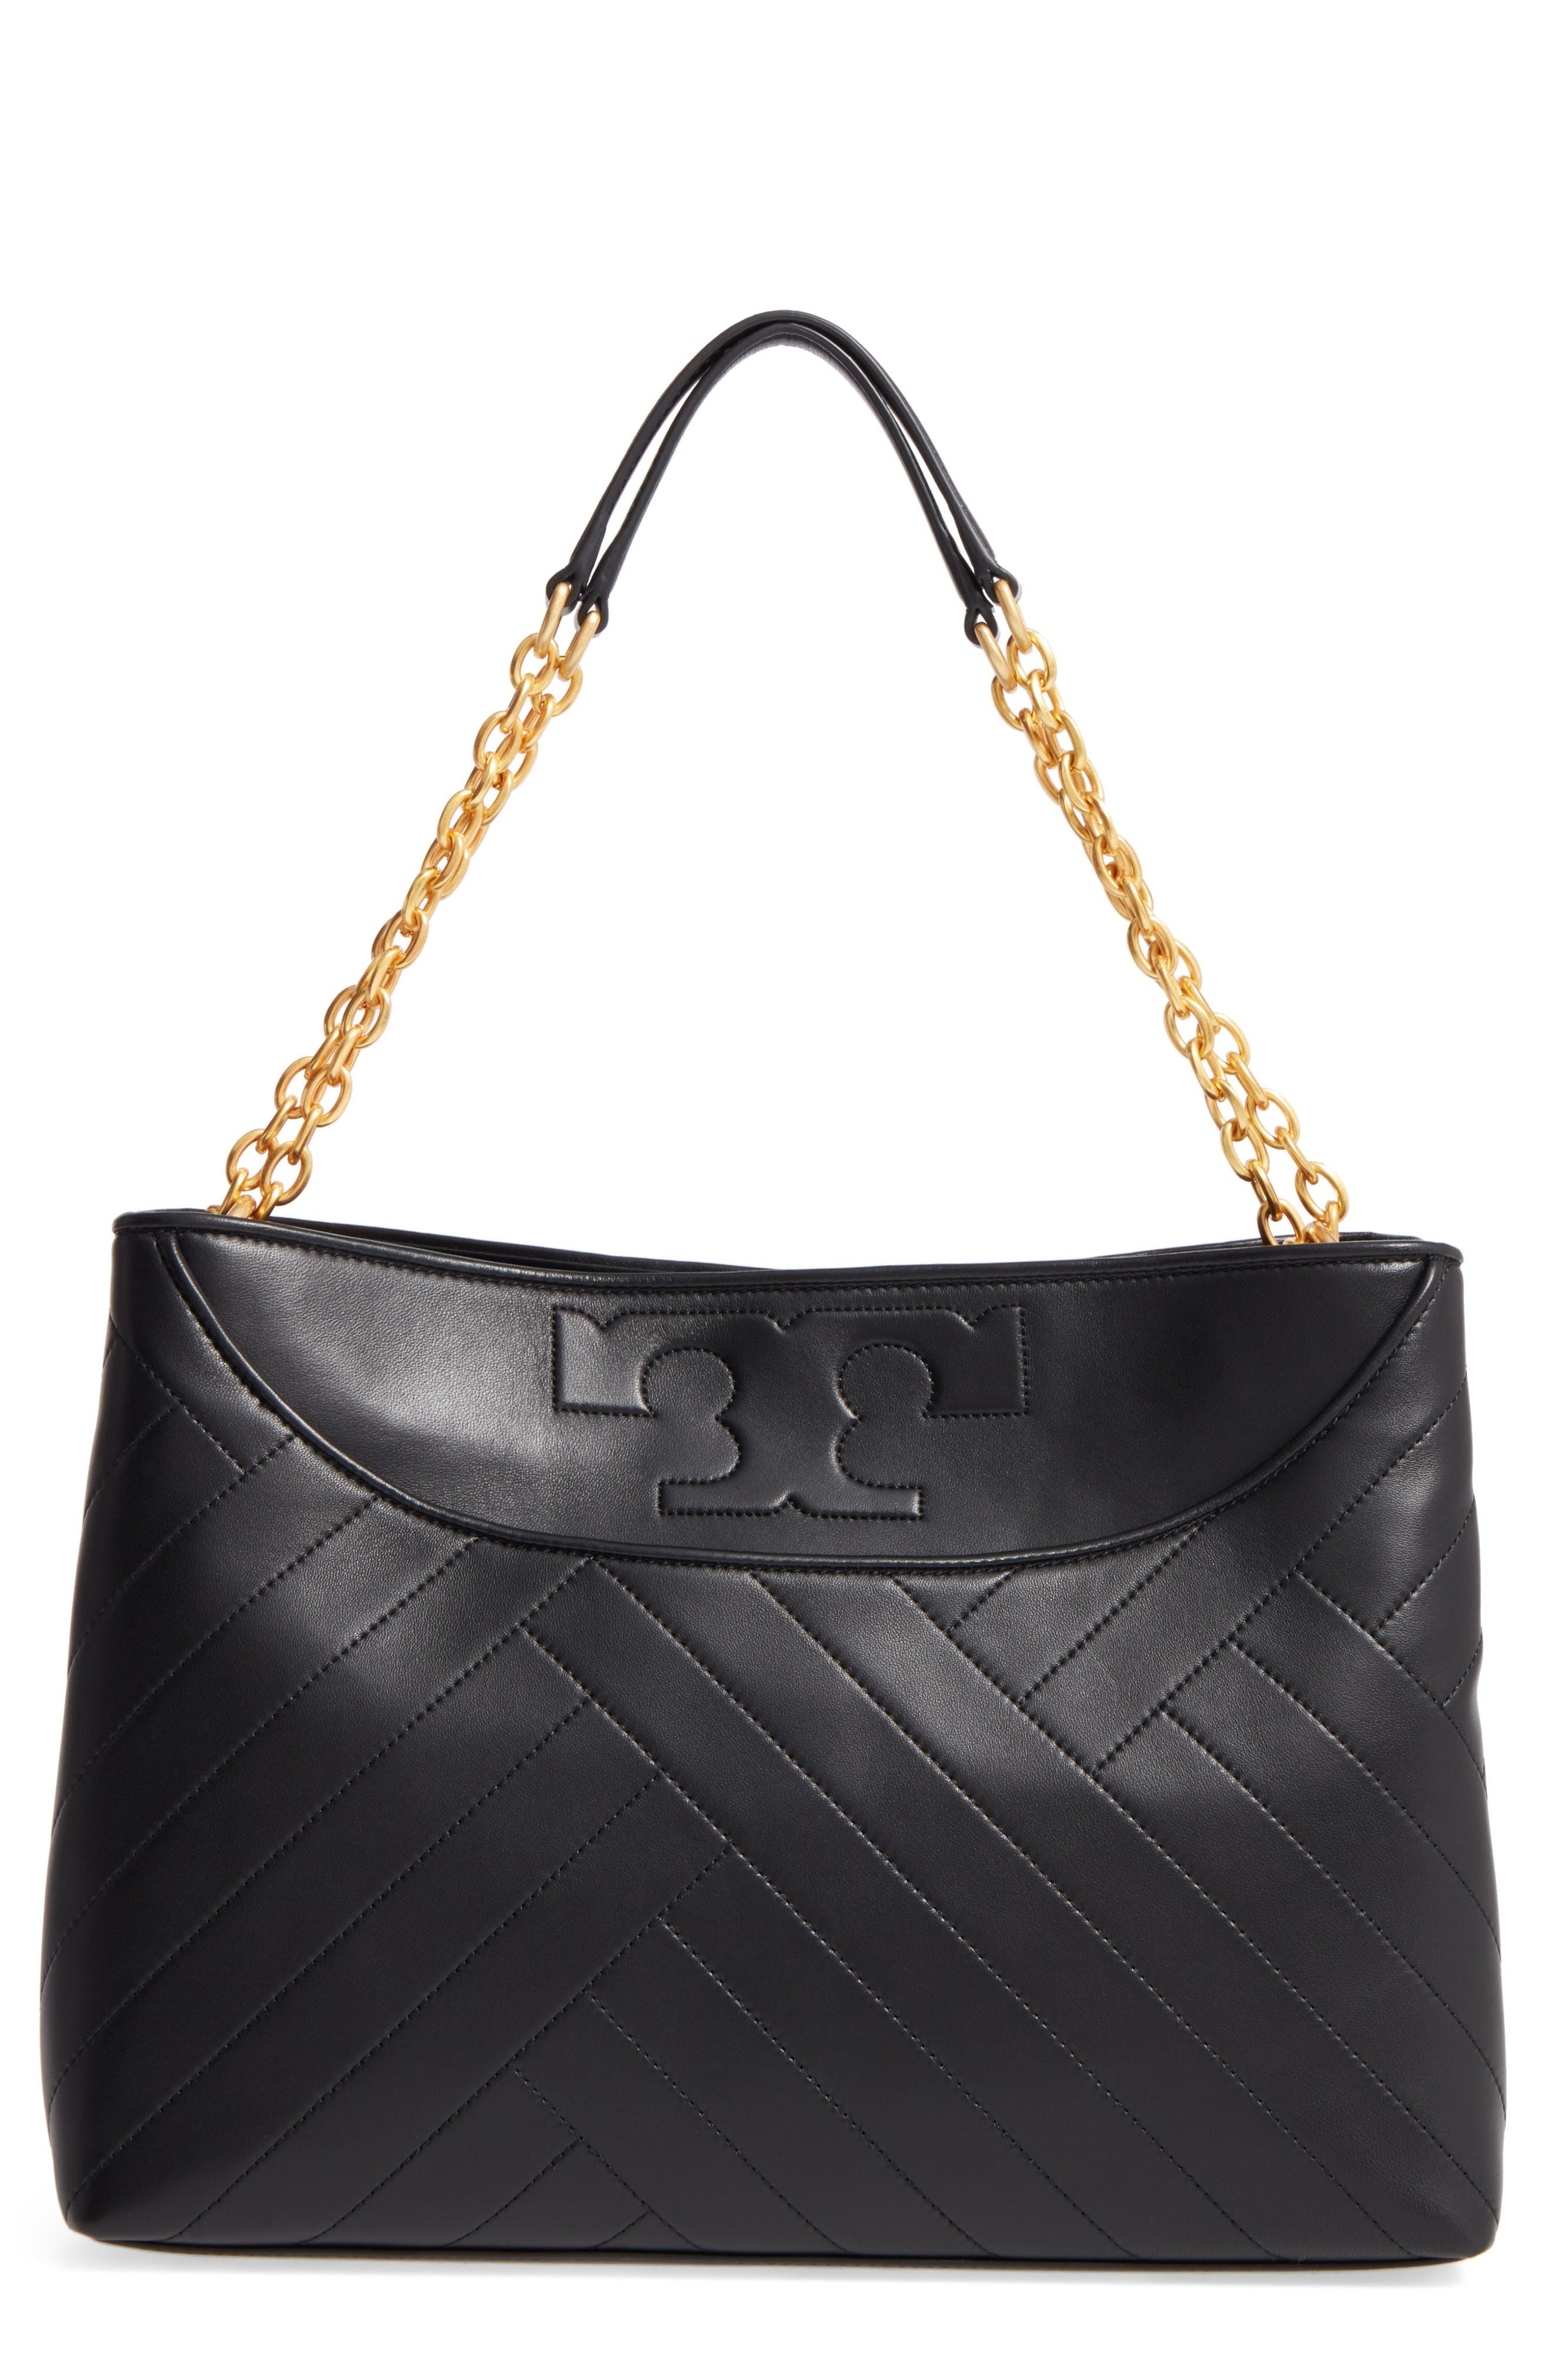 Tory Burch Quilted Slouchy Leather Tote